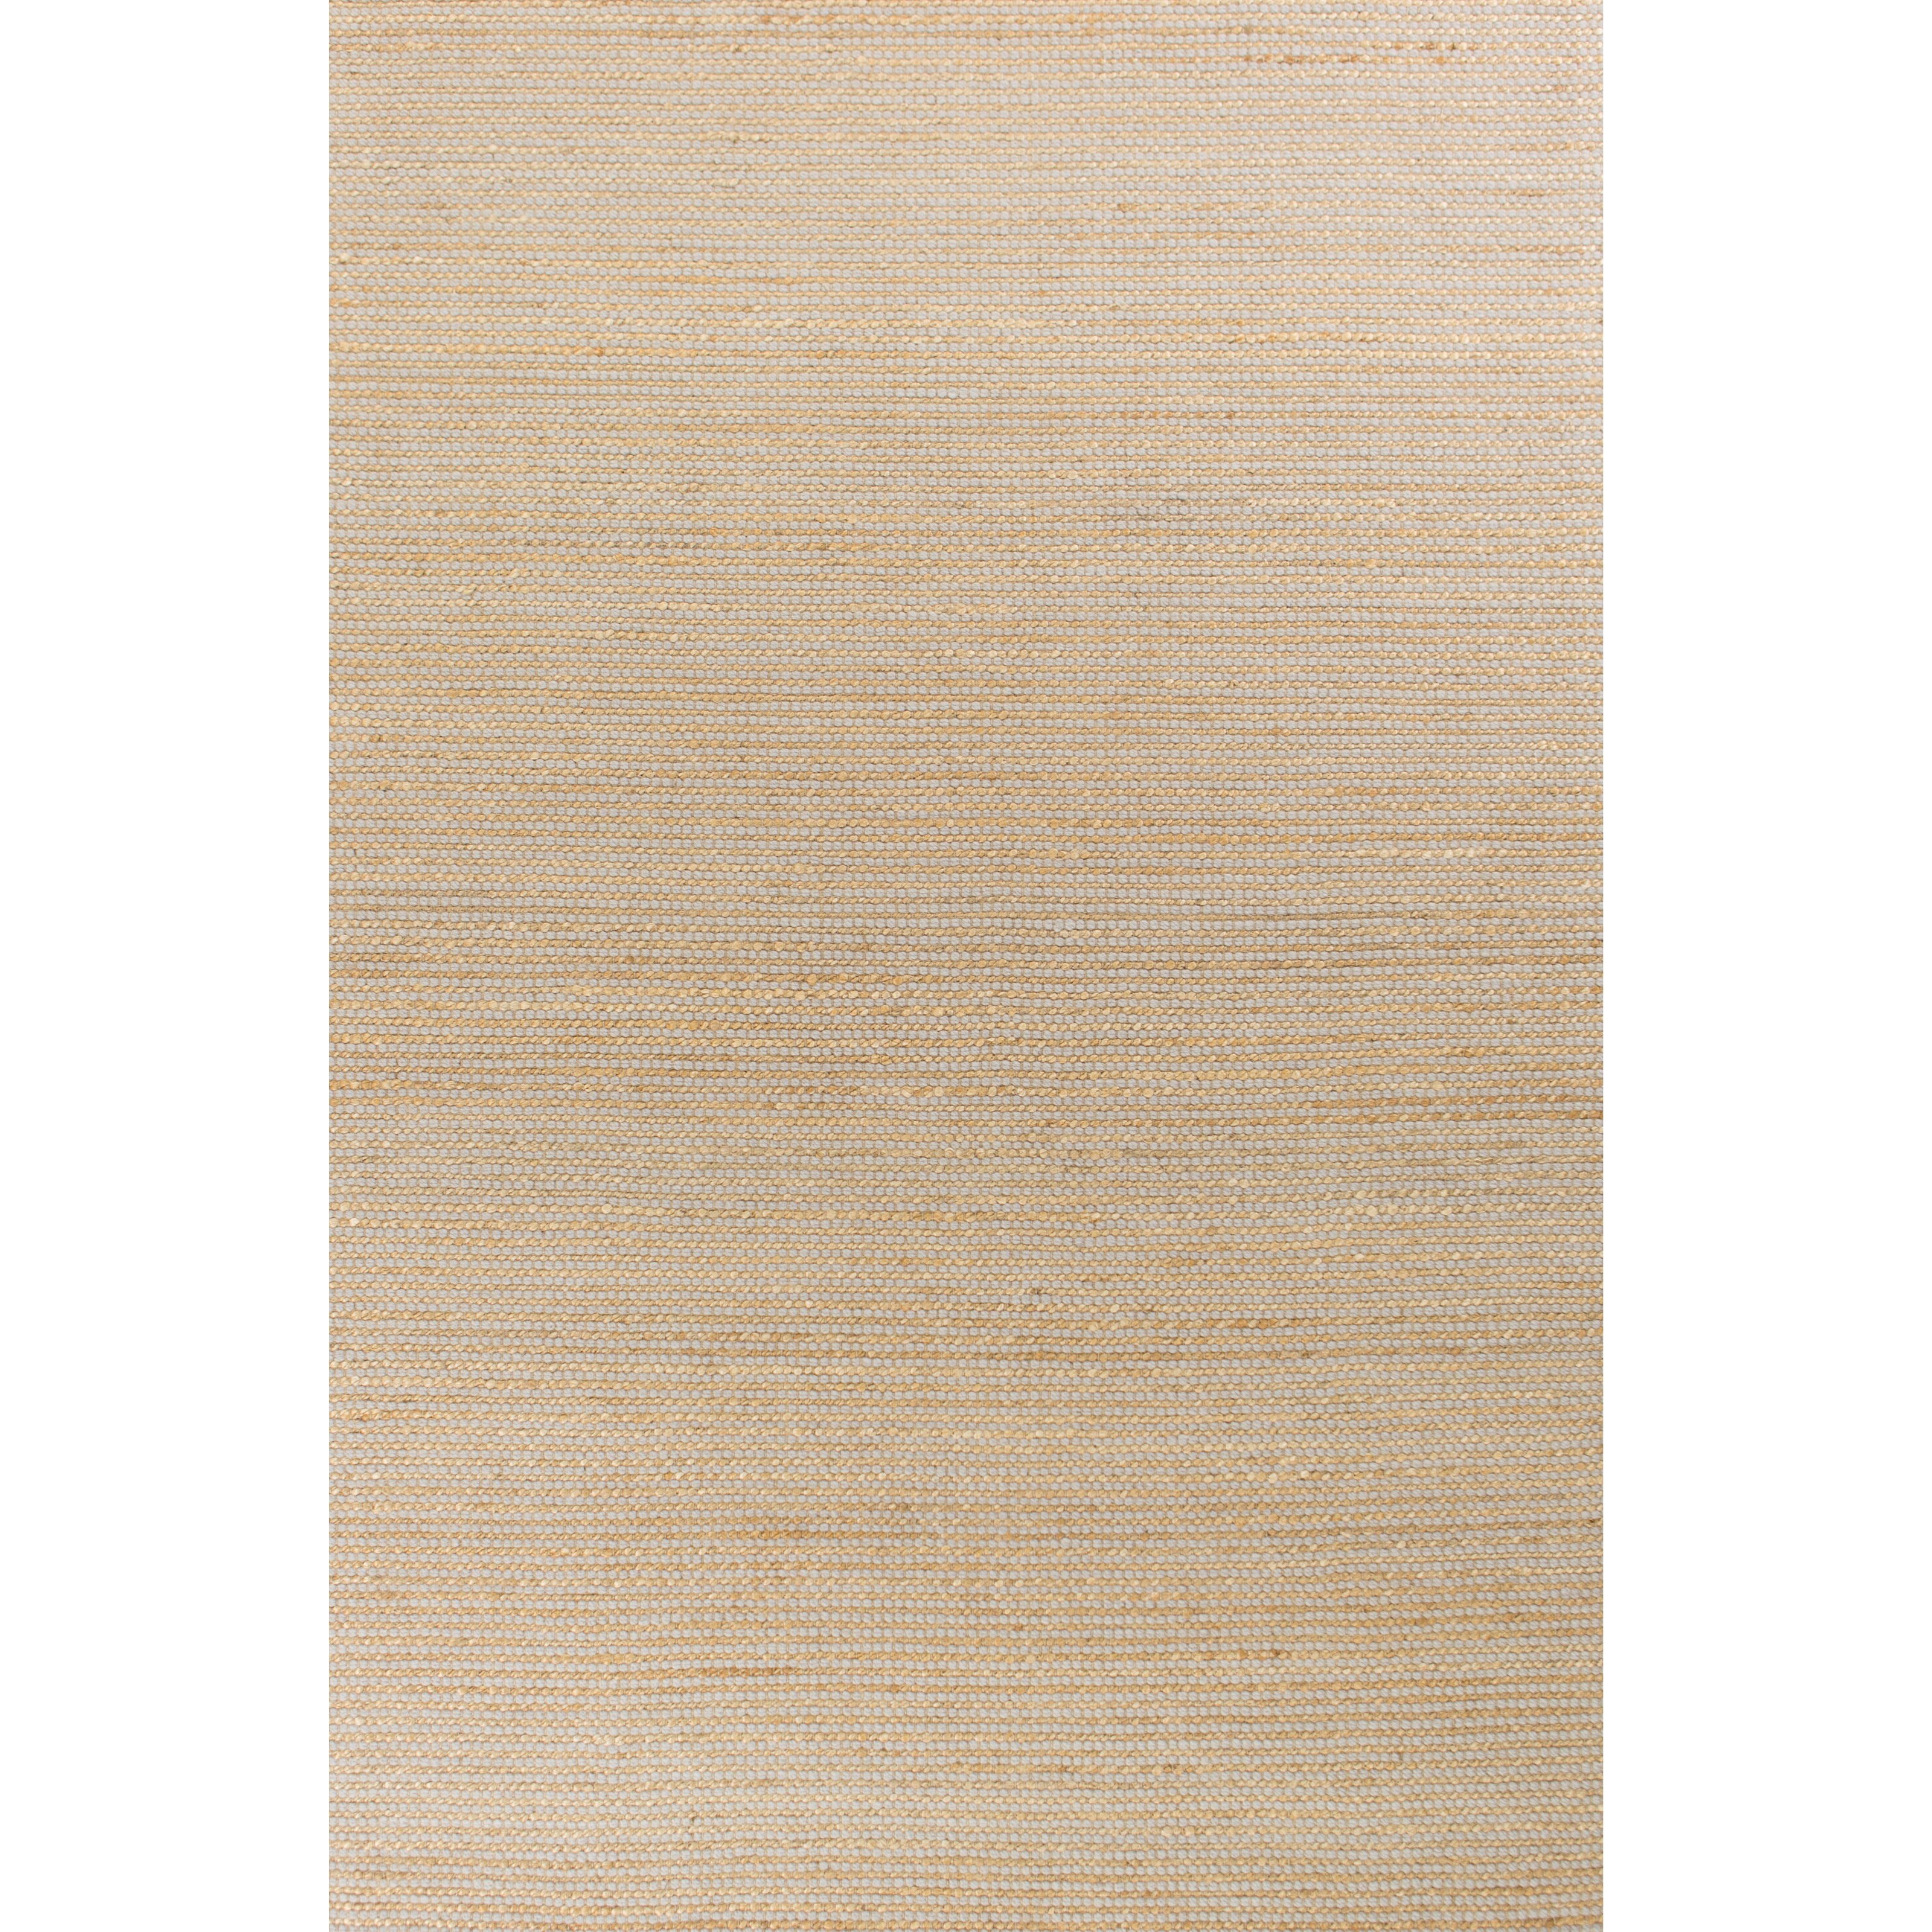 "Mason 10'6"" X 8' Area Rug by Kas at Wilson's Furniture"